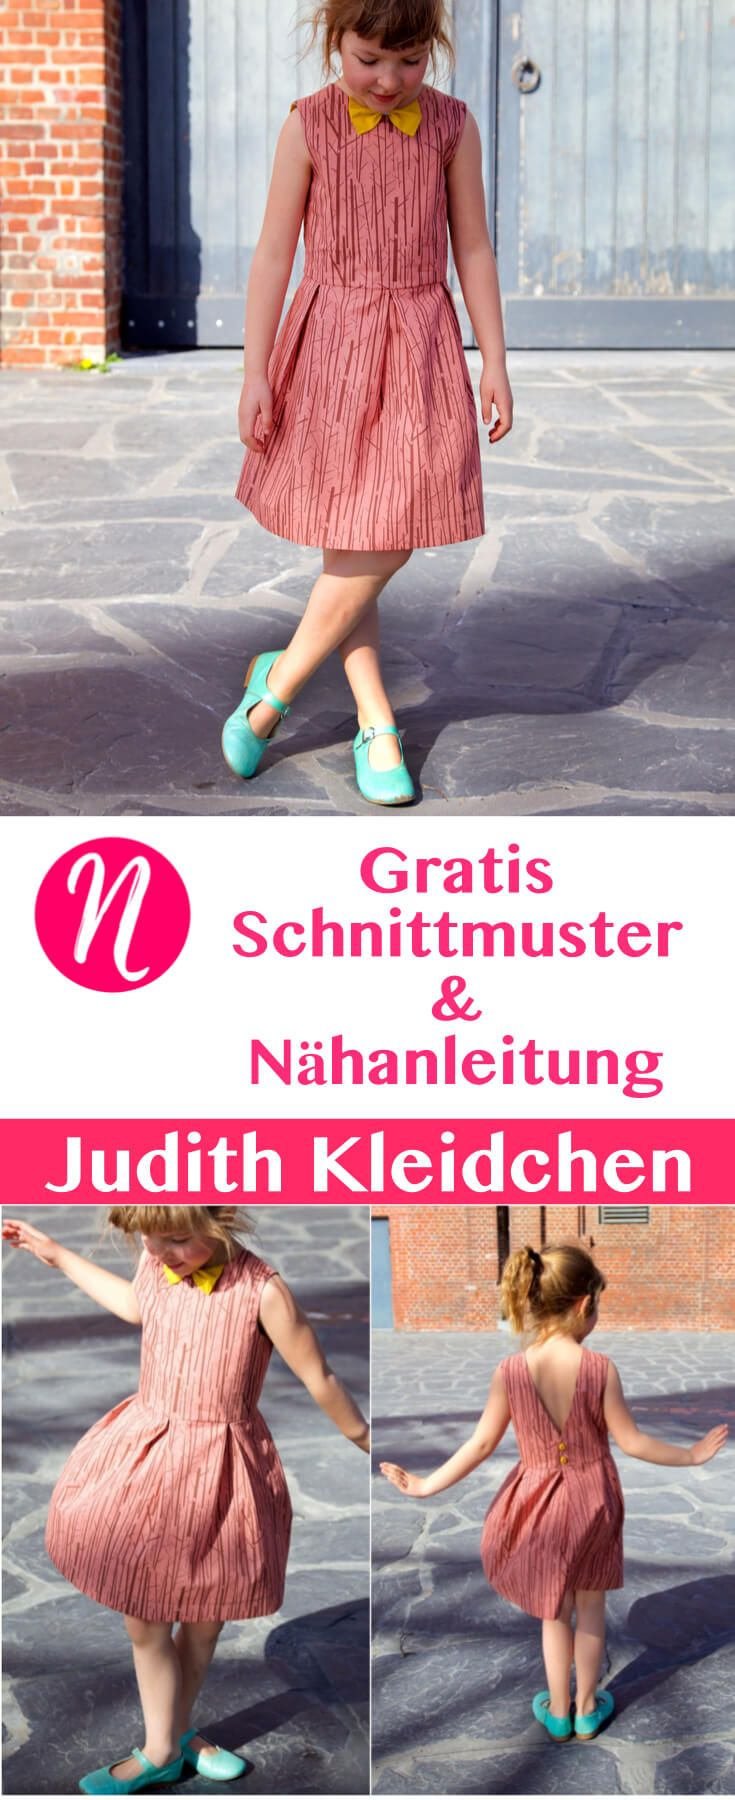 Einfaches Kleid für Mädchen - für 1 - 10 Jahre - Freebook ❤ PDF zum Ausdrucken - DIY - selber nähen ✂ Nähtalente.de - Magazin für kostenlose Schnittmuster ✂ Free sewing pattern for a girls dress vom 1 - 10 years. Freebook PDF-pattern for printing at home.